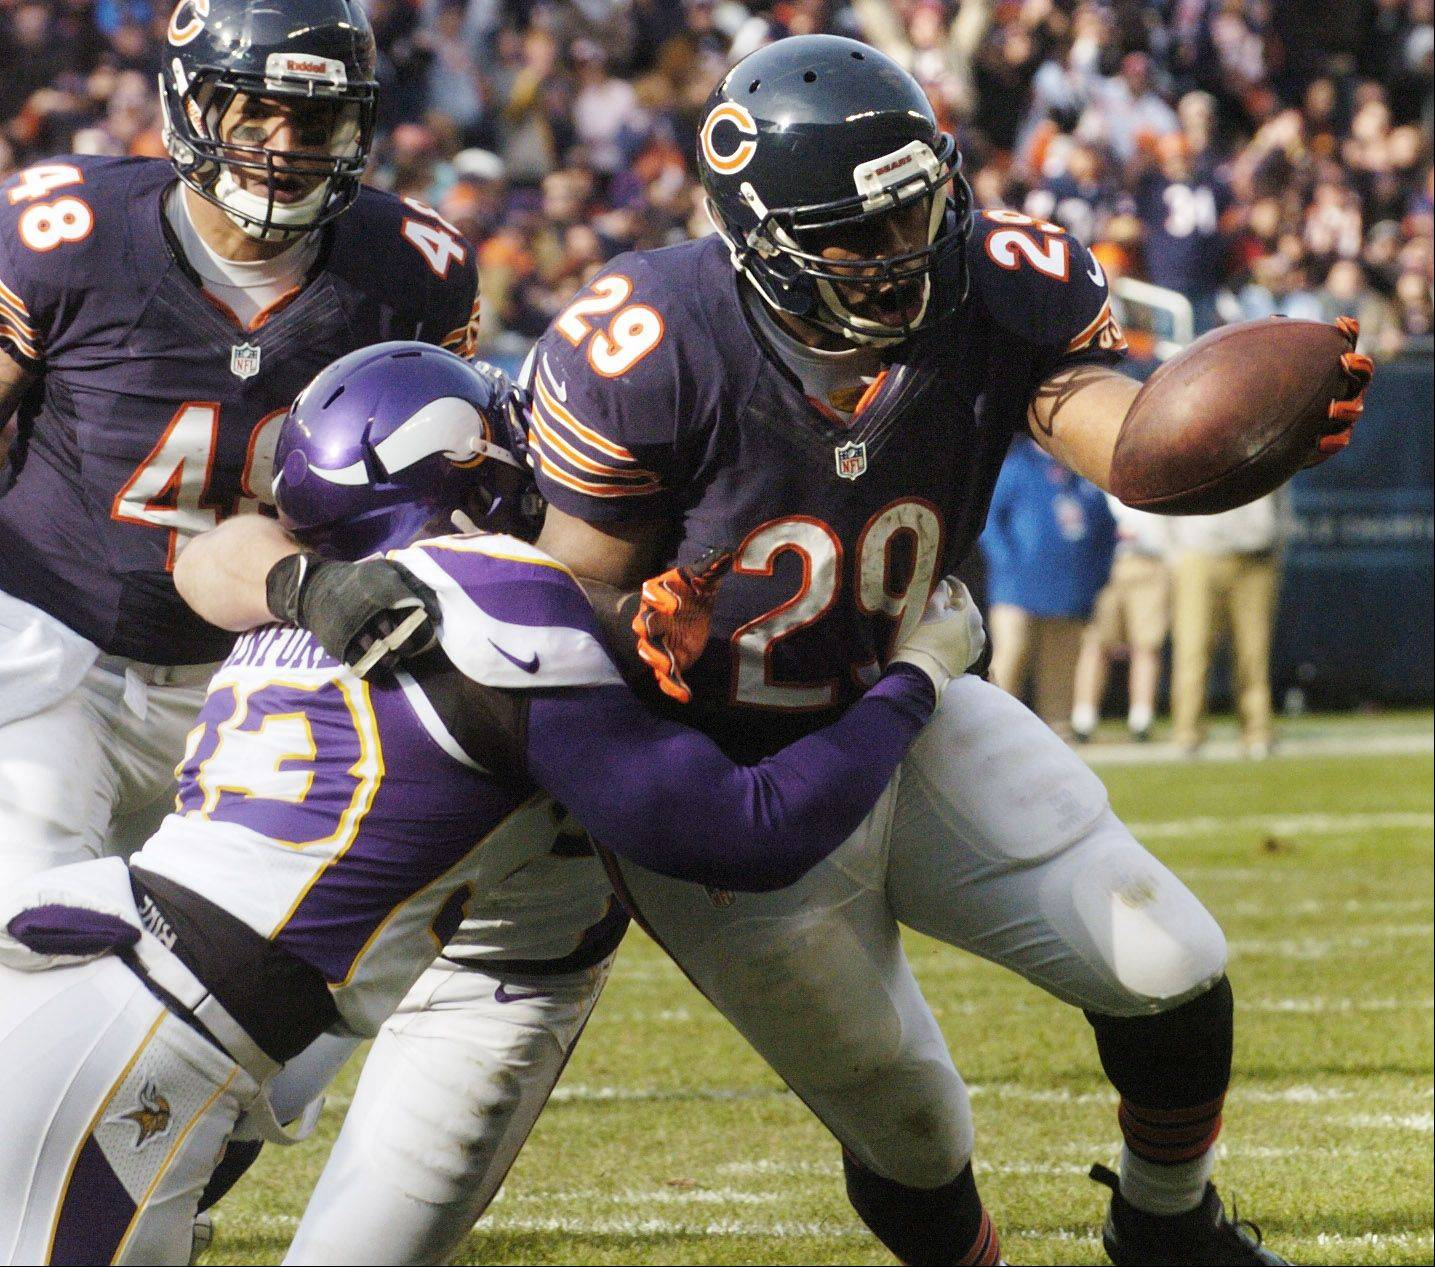 Chicago Bears running back Michael Bush carries the ball for a second-quarter touchdown as he gets past Minnesota Vikings strong safety Jamarca Sanford at Soldier Field Sunday.